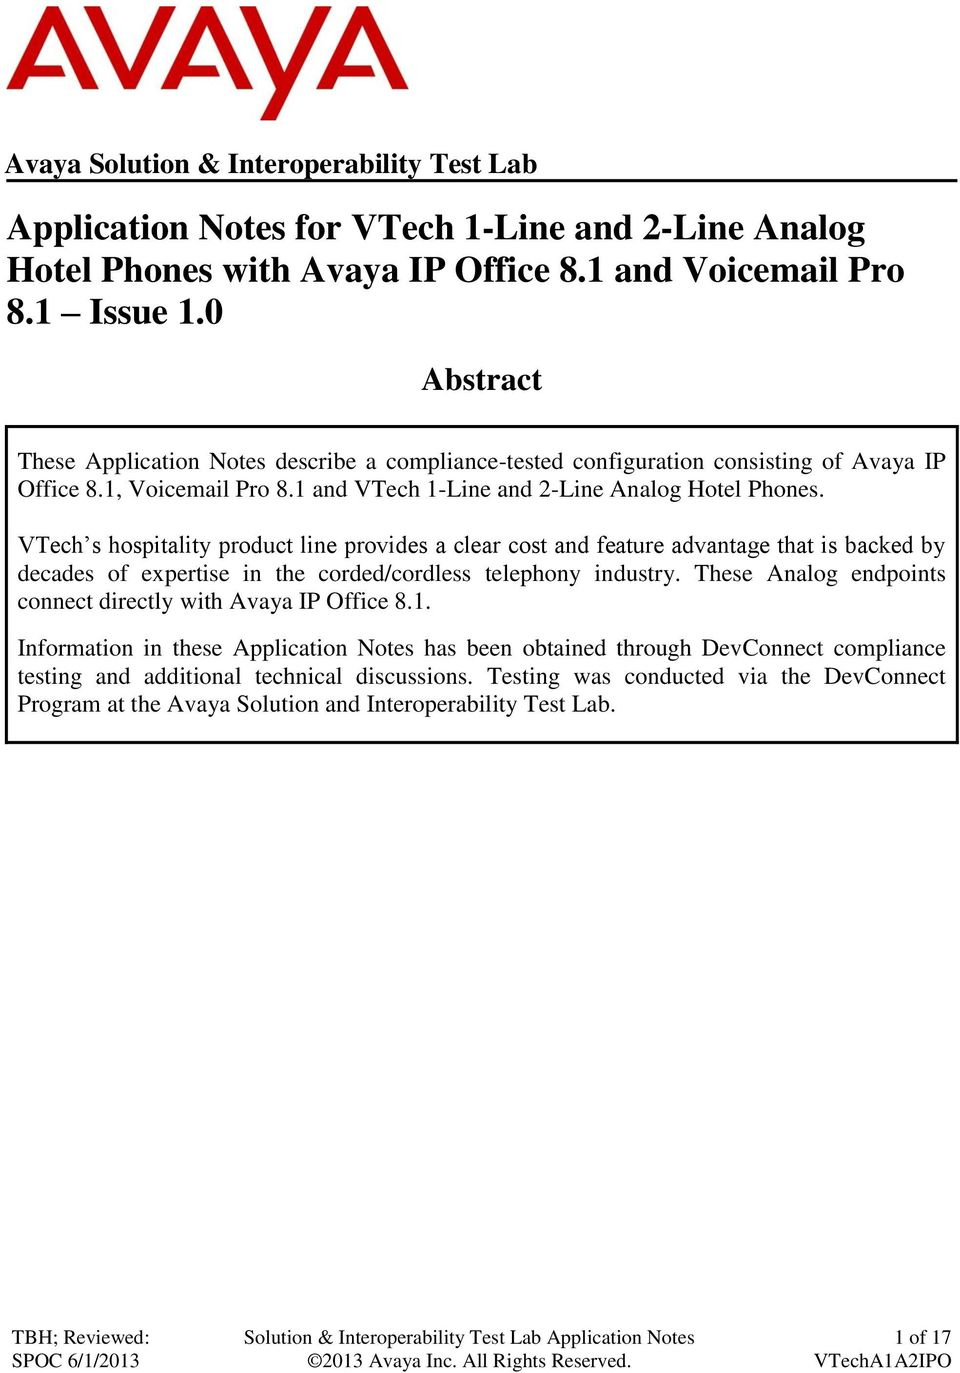 Application Notes for VTech 1-Line and 2-Line Analog Hotel